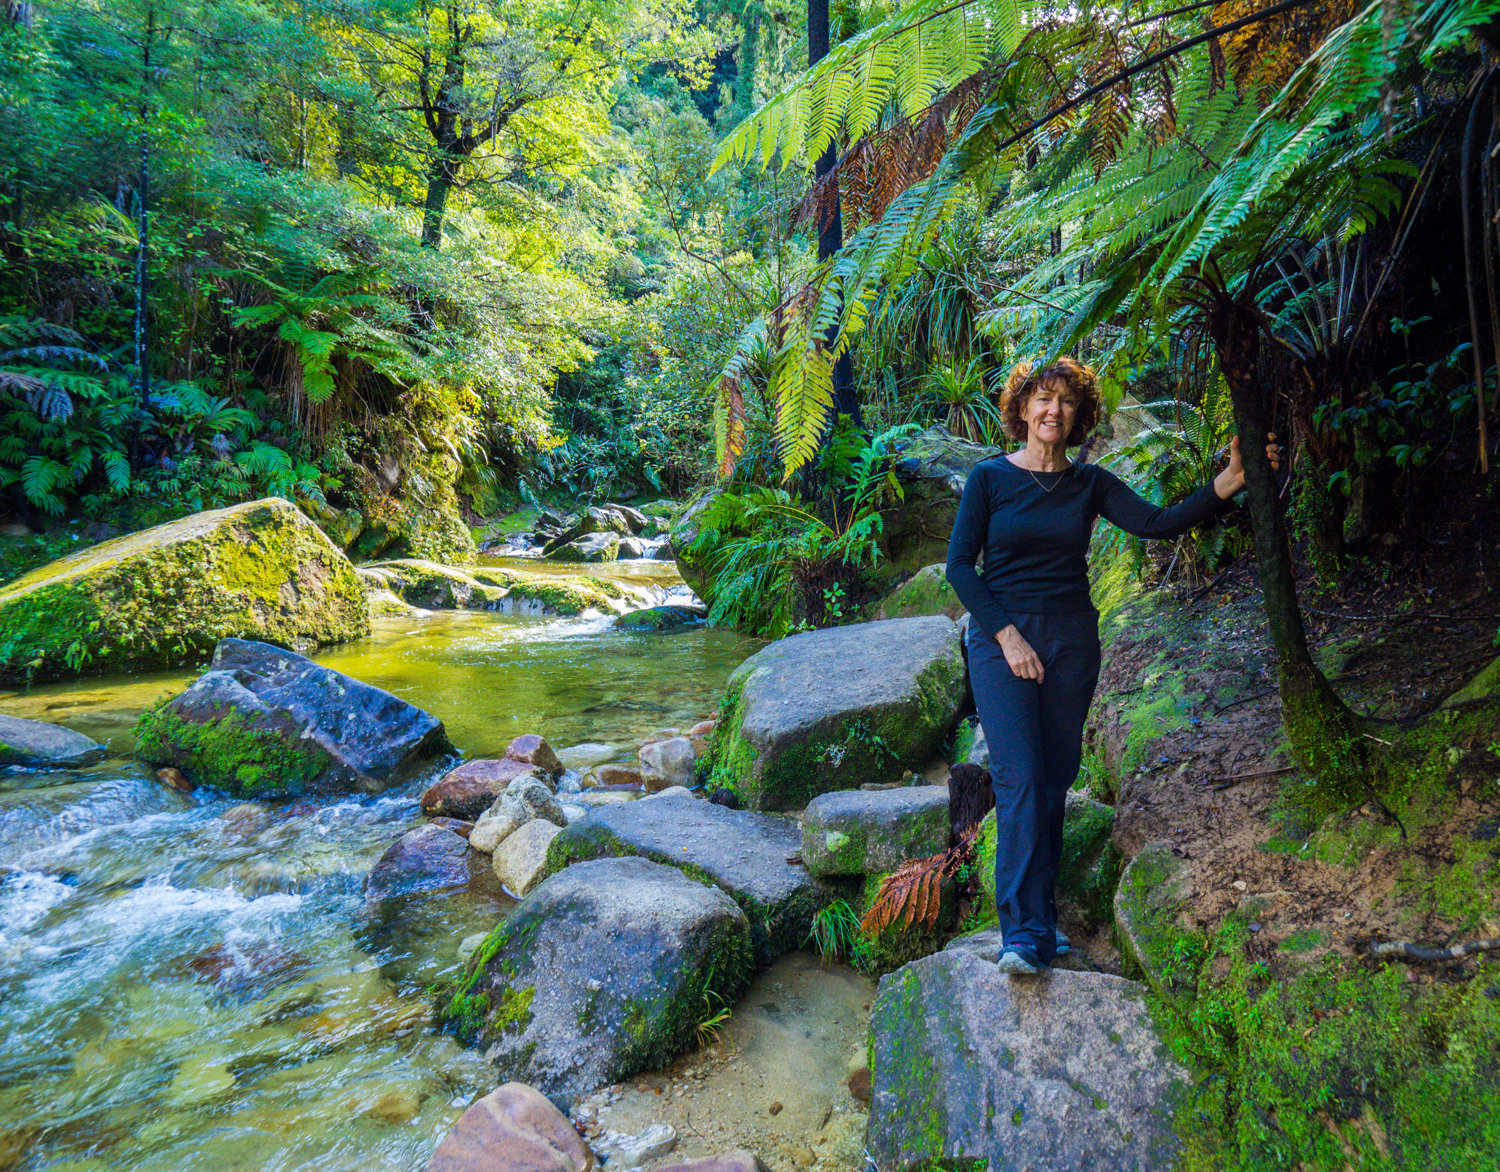 Margie near 'Cleopatra's Pool' in Abel Tasman National Park, Nelson, NZ, 27 Aug 2016. 1/60sec, f/4, ISO 800